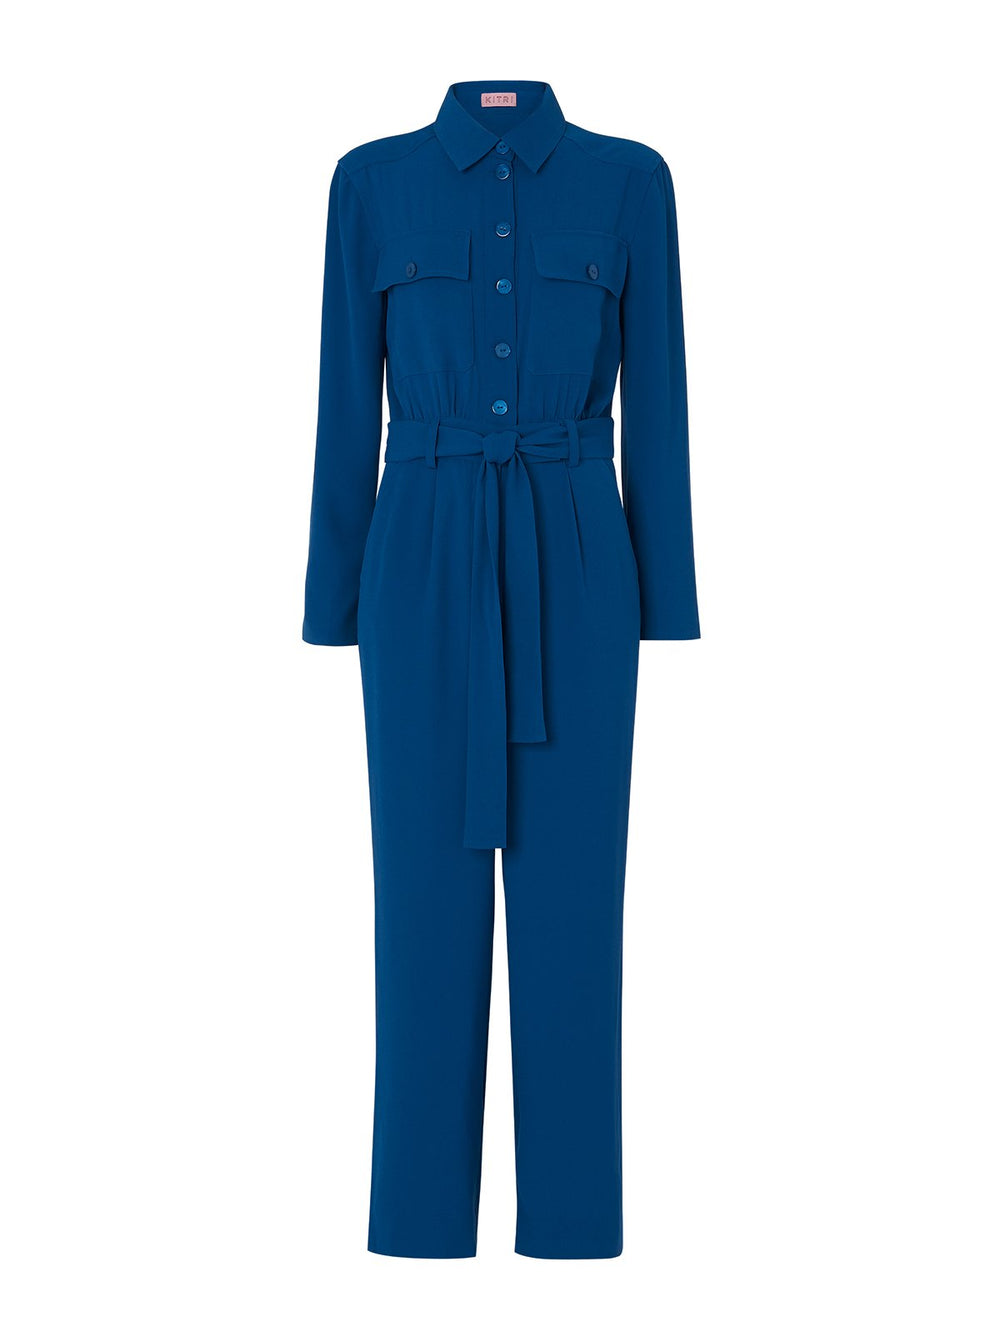 Celeste Blue Tailored Jumpsuit by KITRI Studio